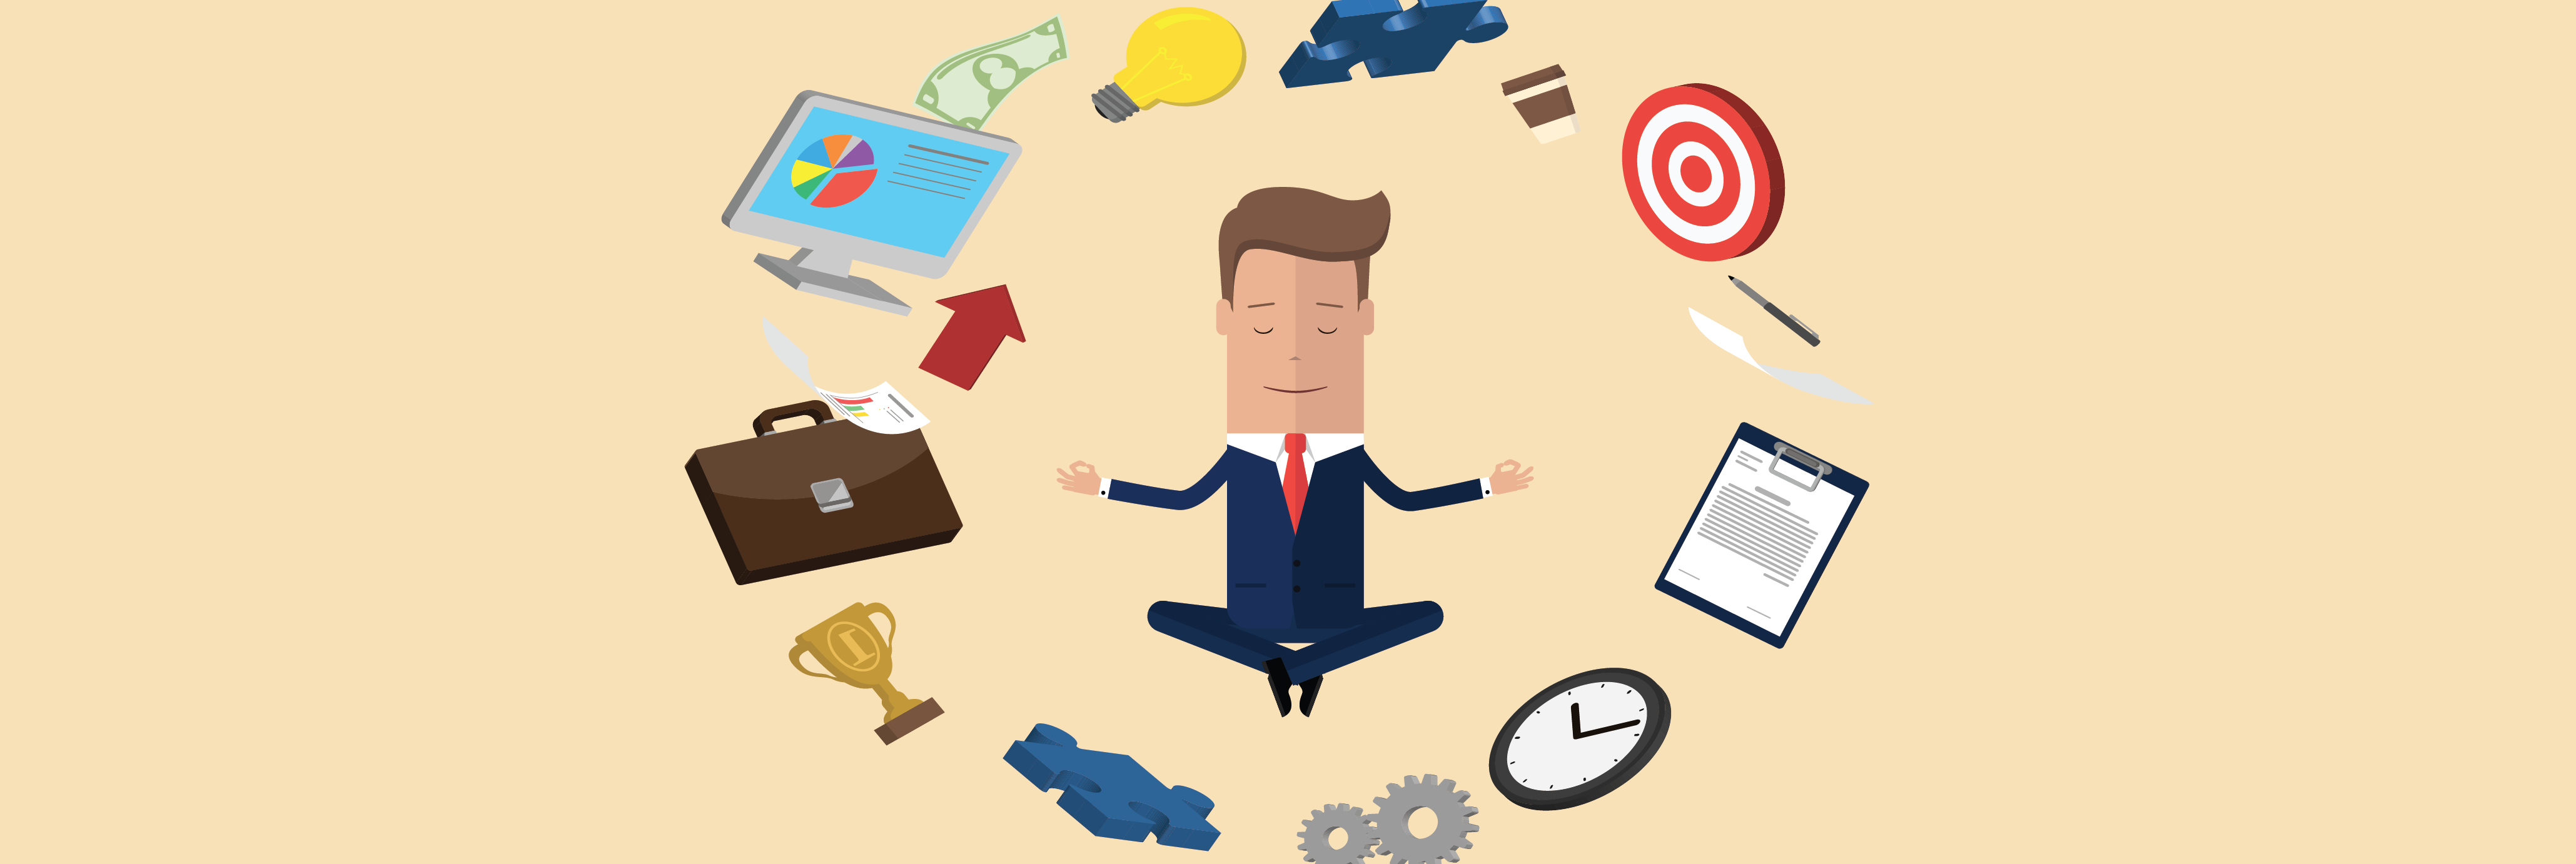 5 Time Management Tips To Achieve Better Work-Life Balance